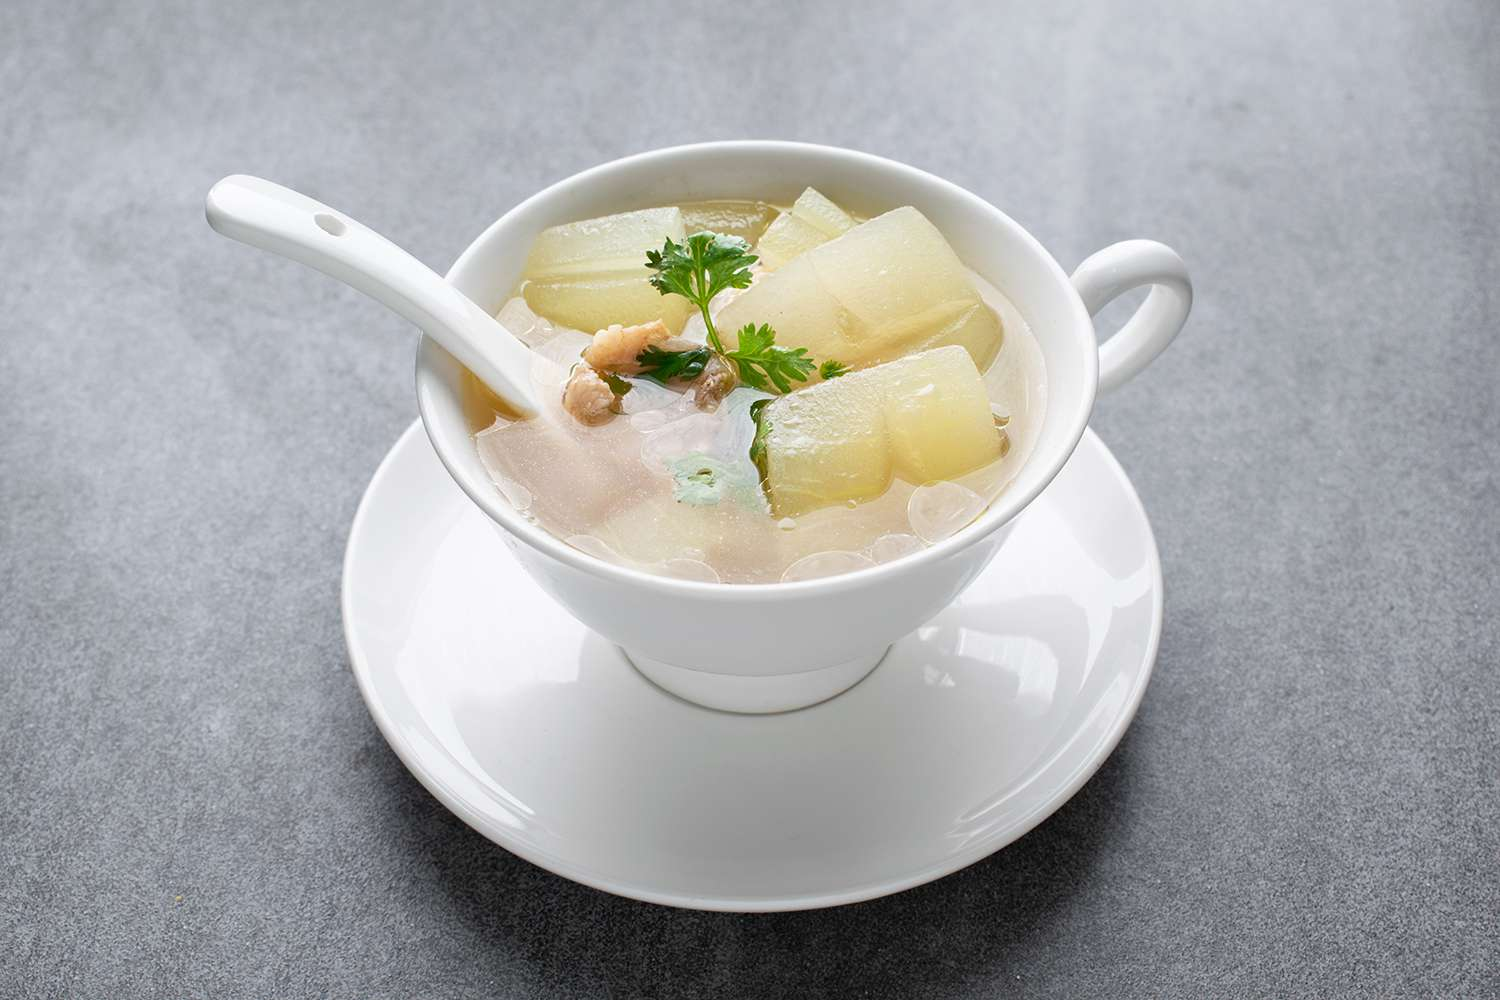 Boiled winter melon soup with chicken rib in white bowl on table.